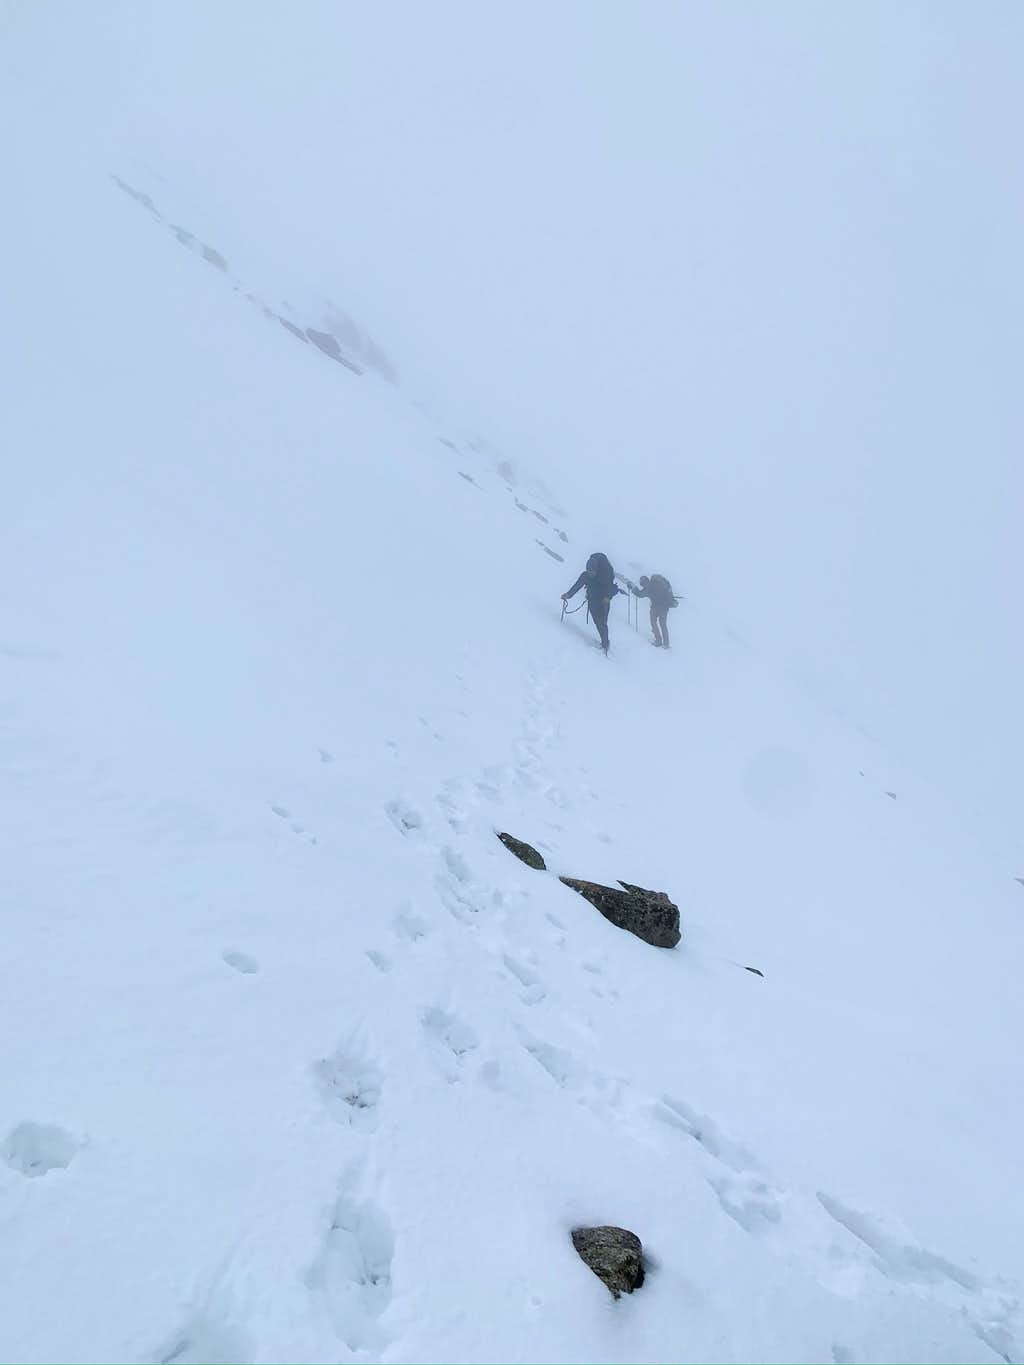 Traverse across snow filled gully unsure if we are on trail or not